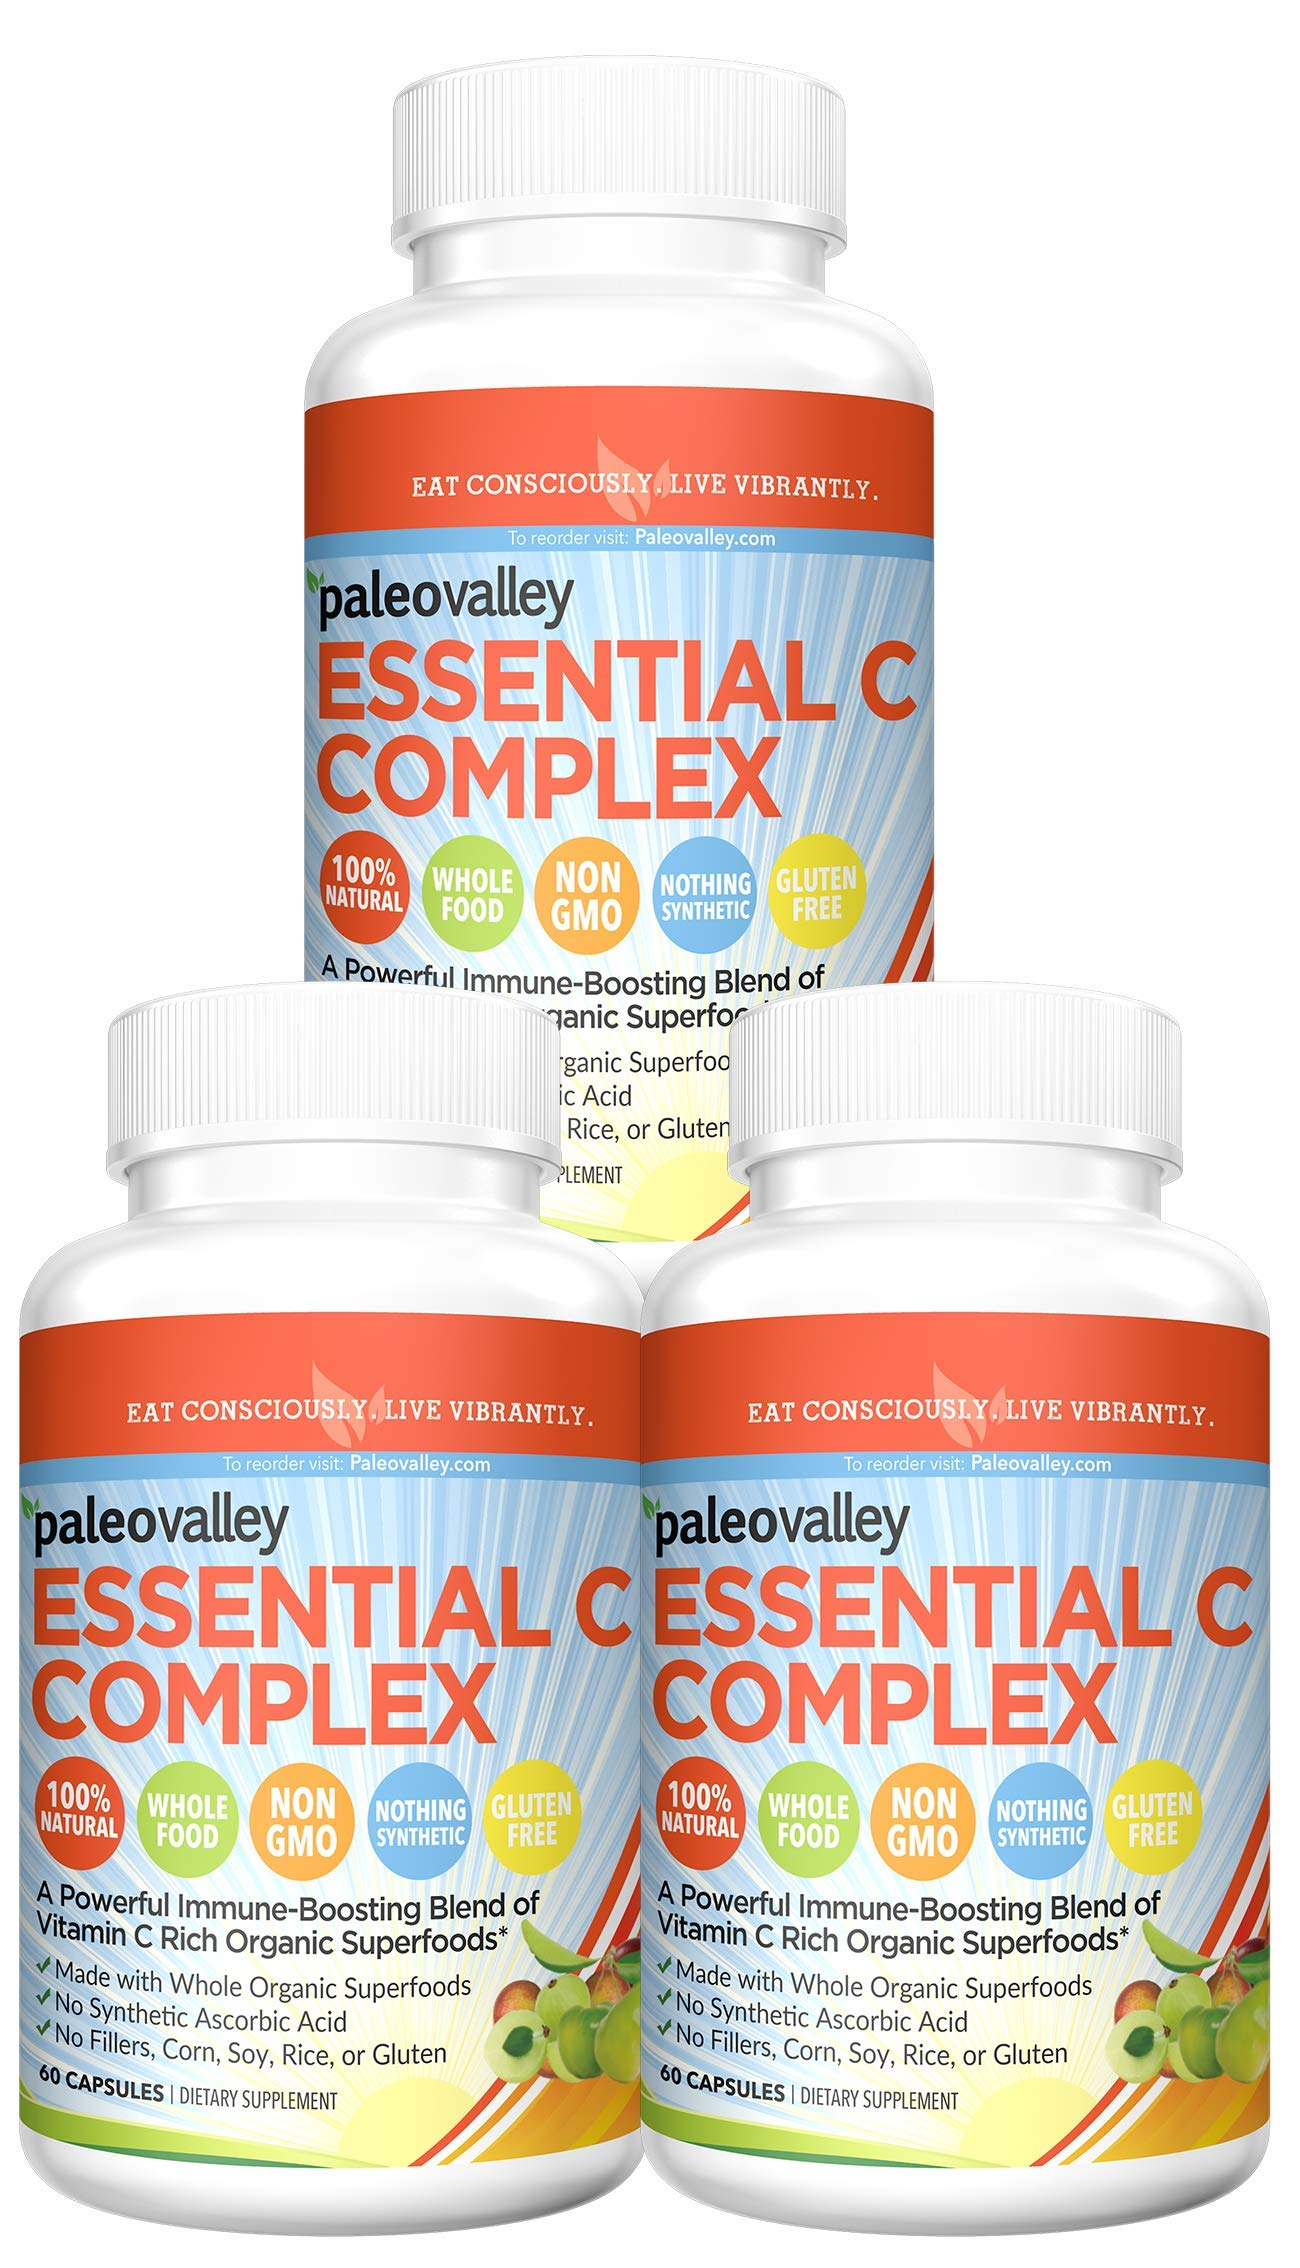 Paleovalley: Essential C Complex (450 mg, 30-Day Supply) - Vitamin C Supplement - 750% of Daily Value Per Serving - Boost Immunity - Non GMO - Gluten Free - Made with Organic Berries and Cherries by Paleovalley